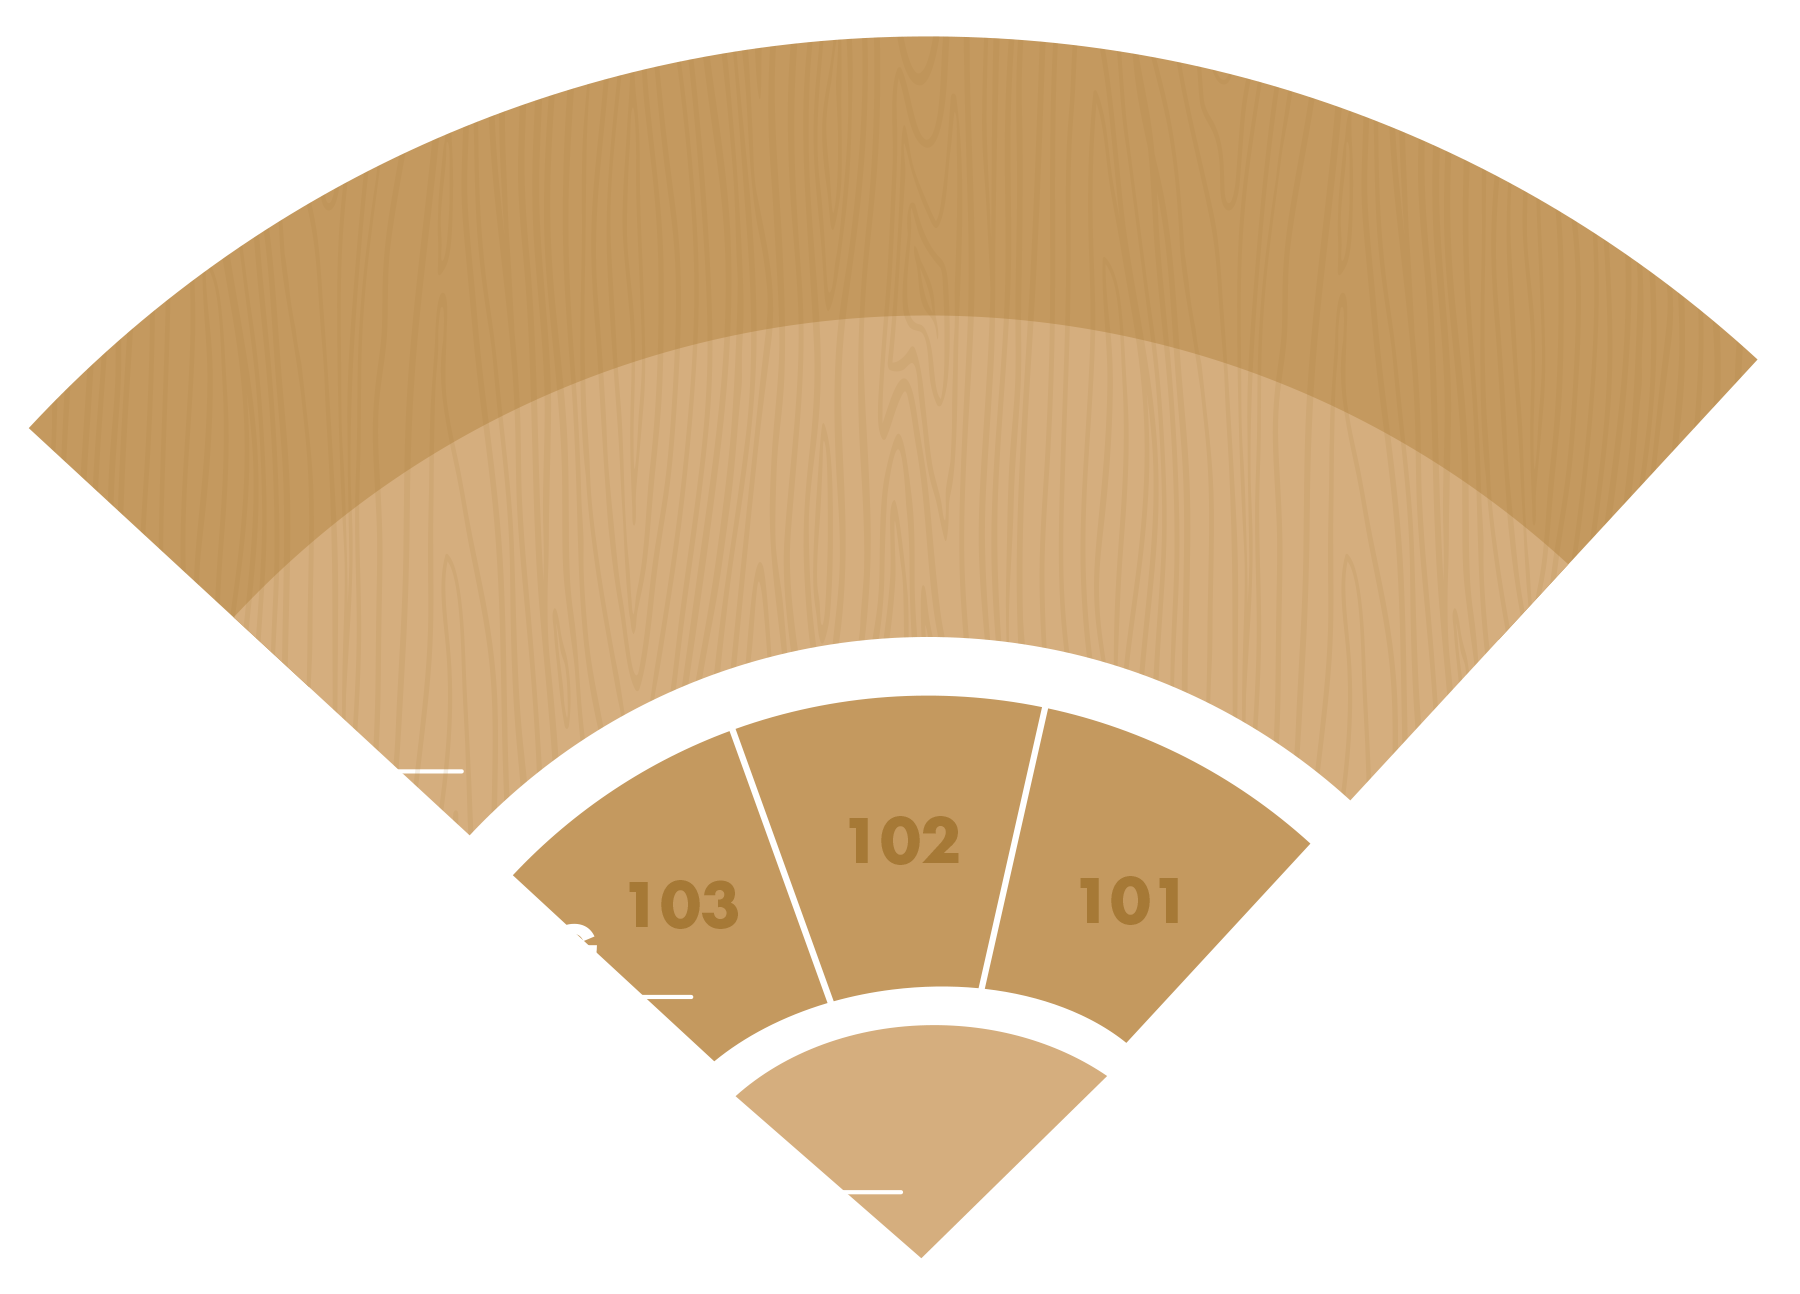 Seatingchart The Basi Nationwide Amphitheater At The Fruit